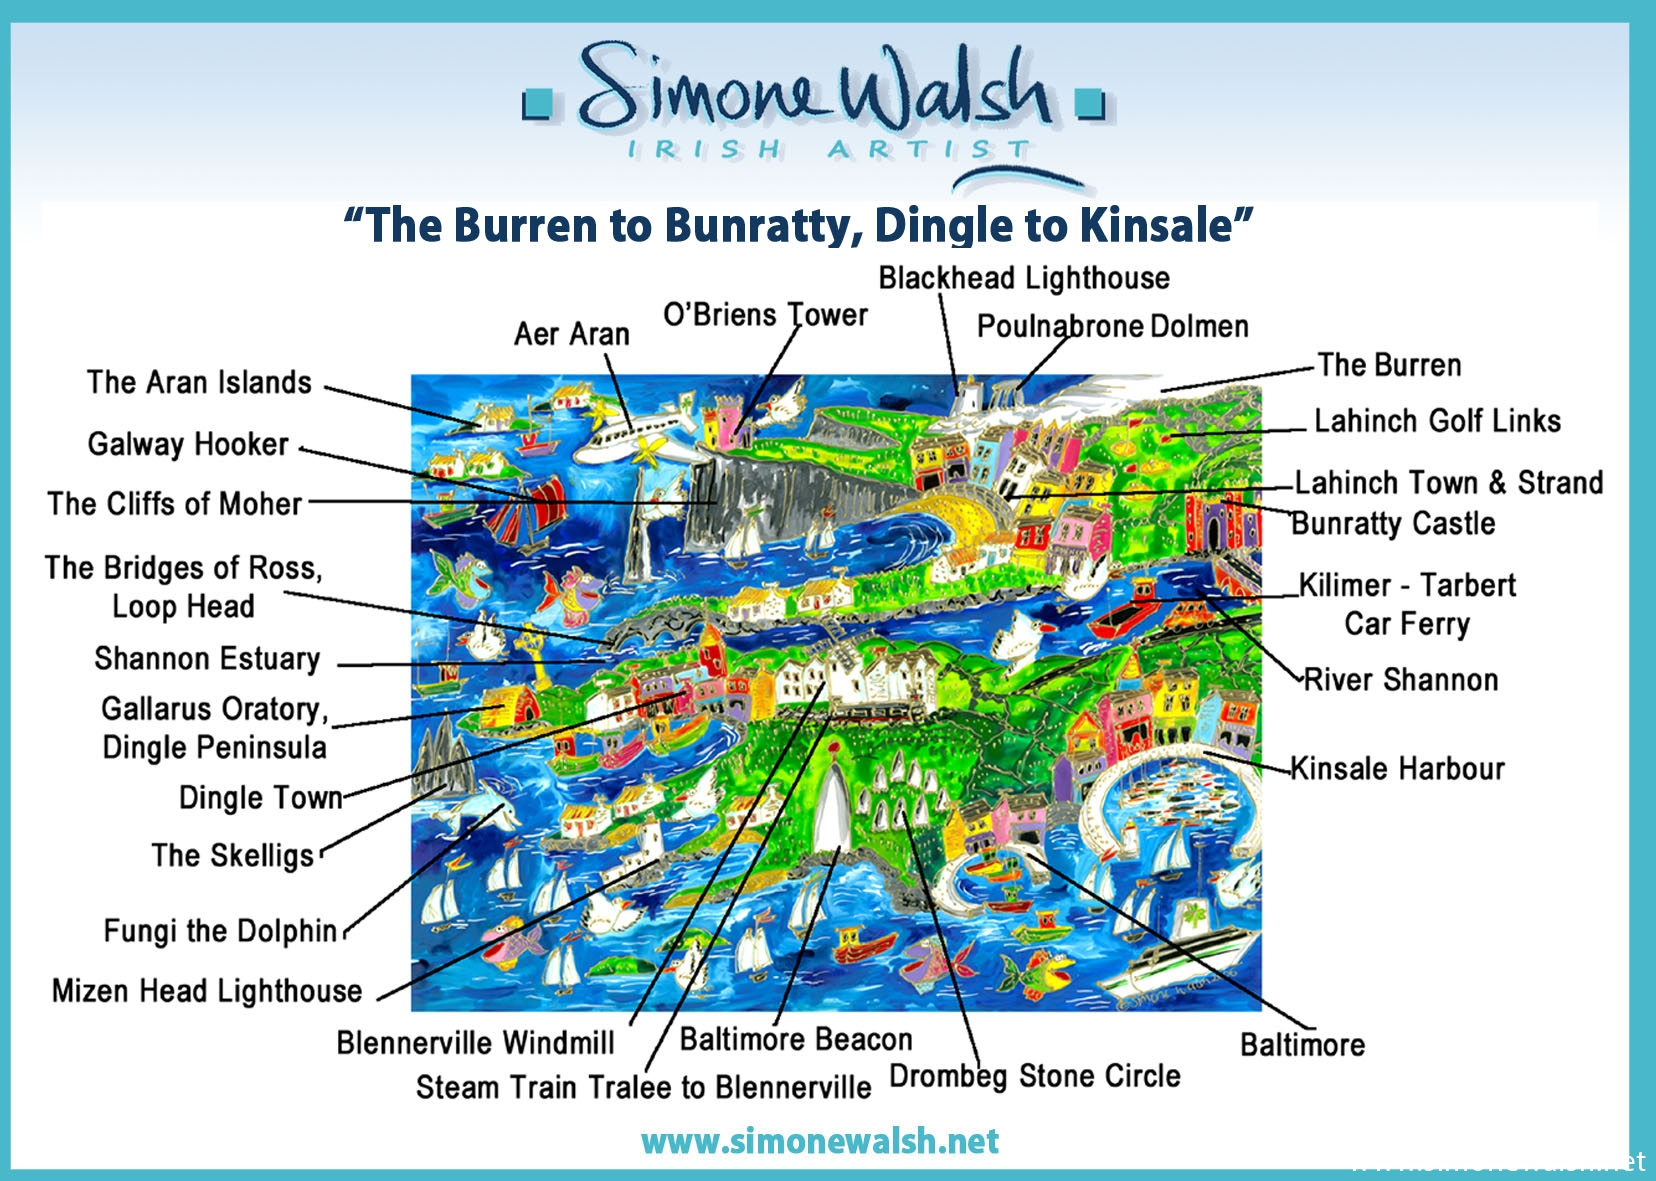 Burren Ireland Map.The Burren To Bunratty Dingle To Kinsale Simone Walsh